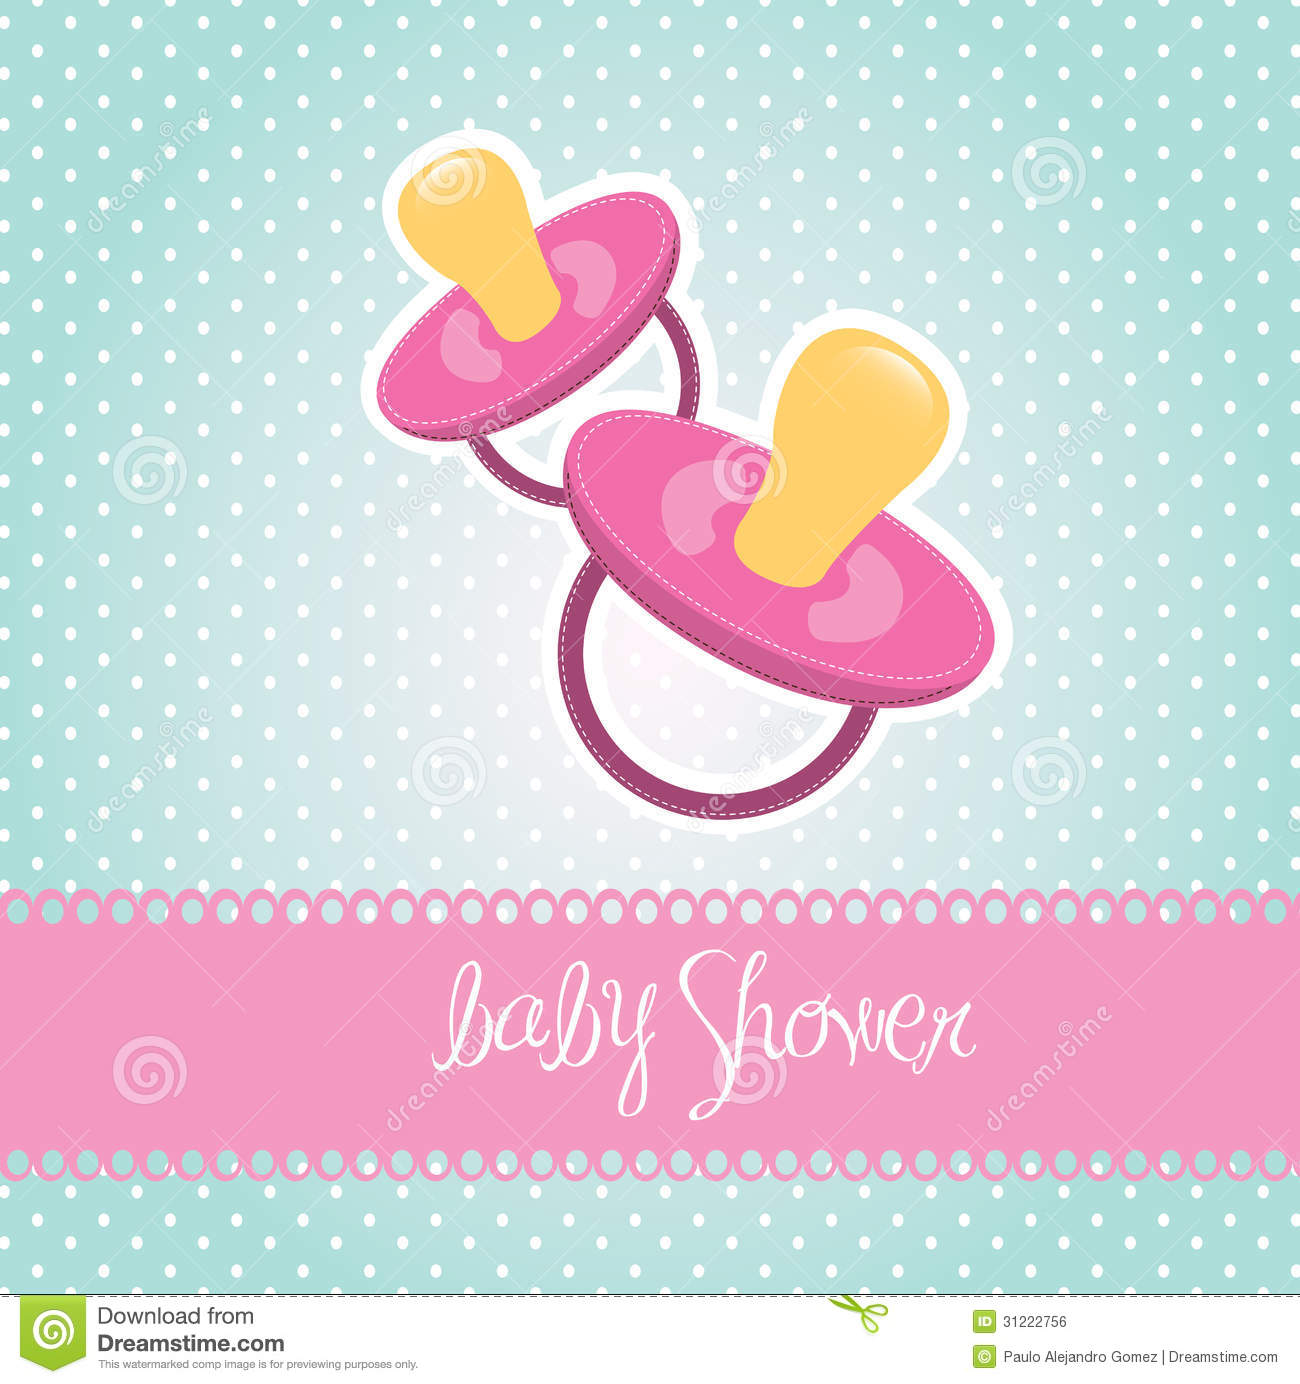 baby shower royalty free stock image image 31222756